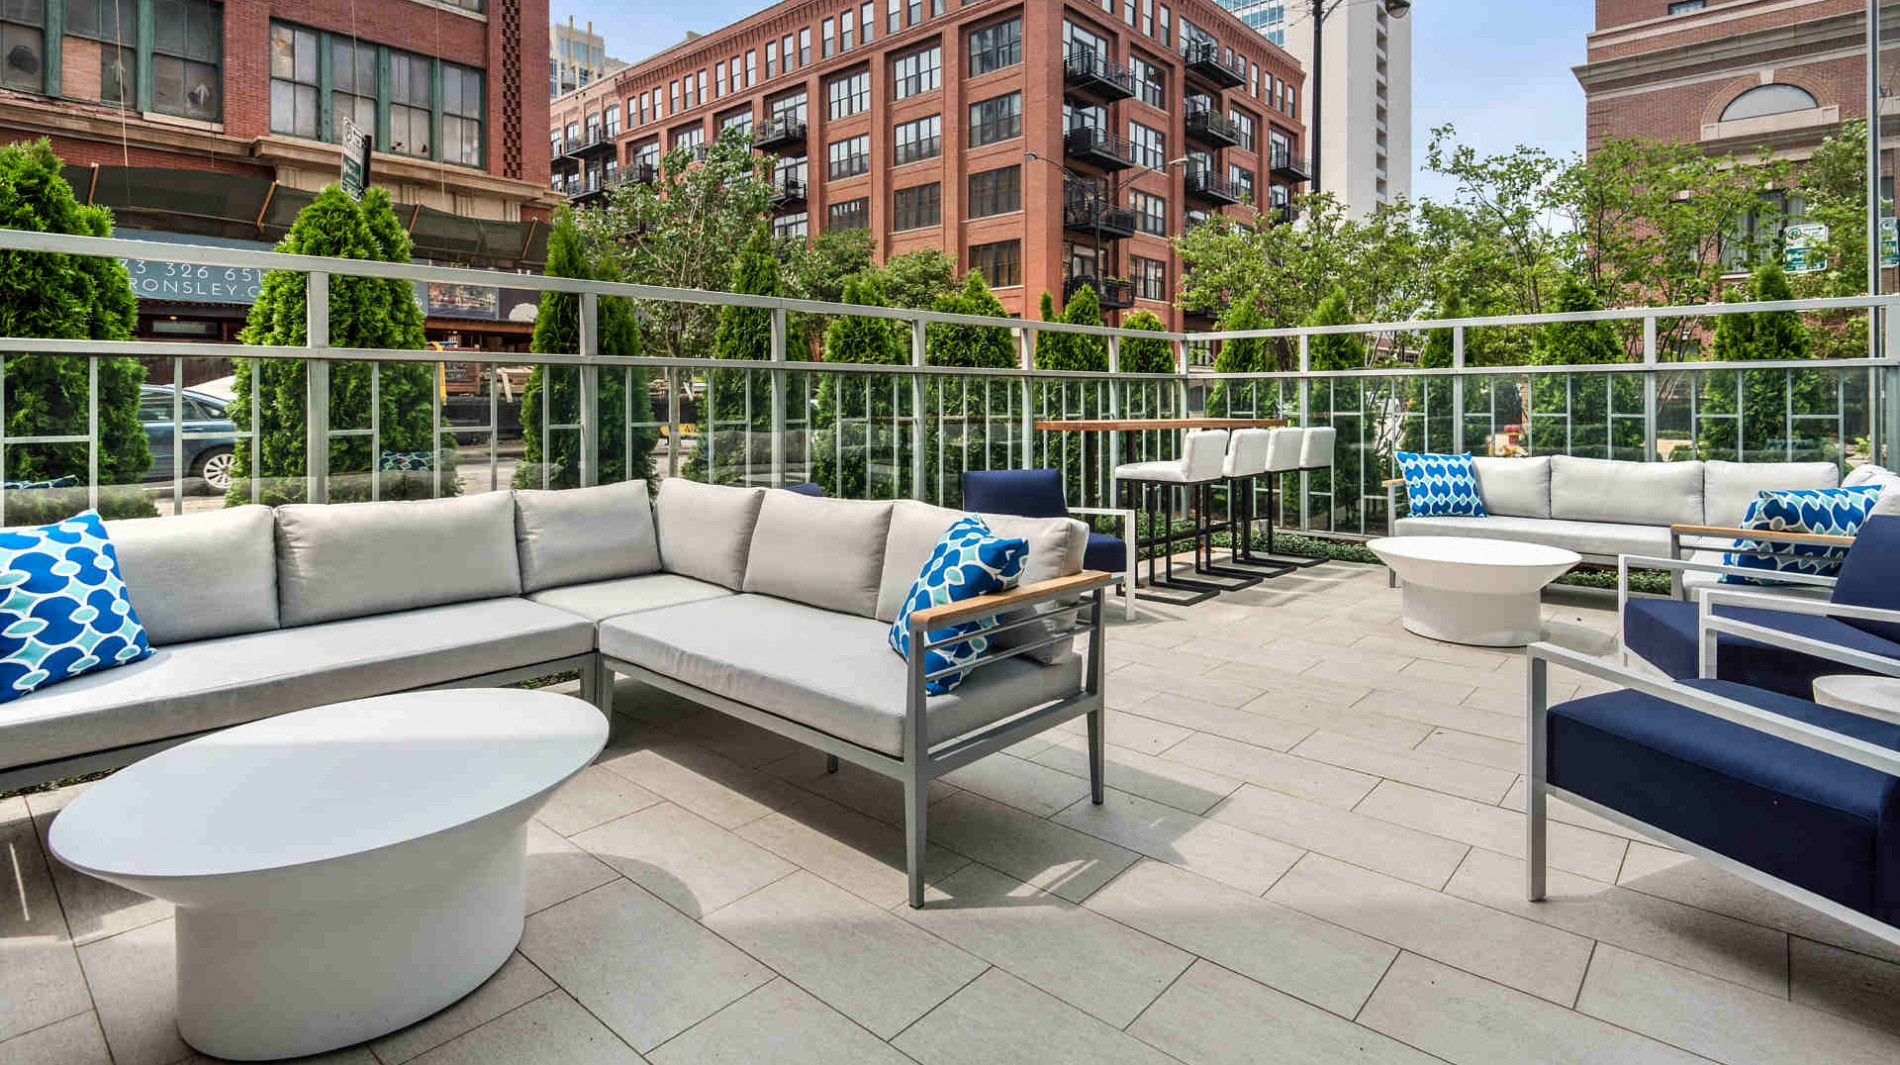 Enjoy our outdoor entertaining terrace with fireplace and lounge seating.